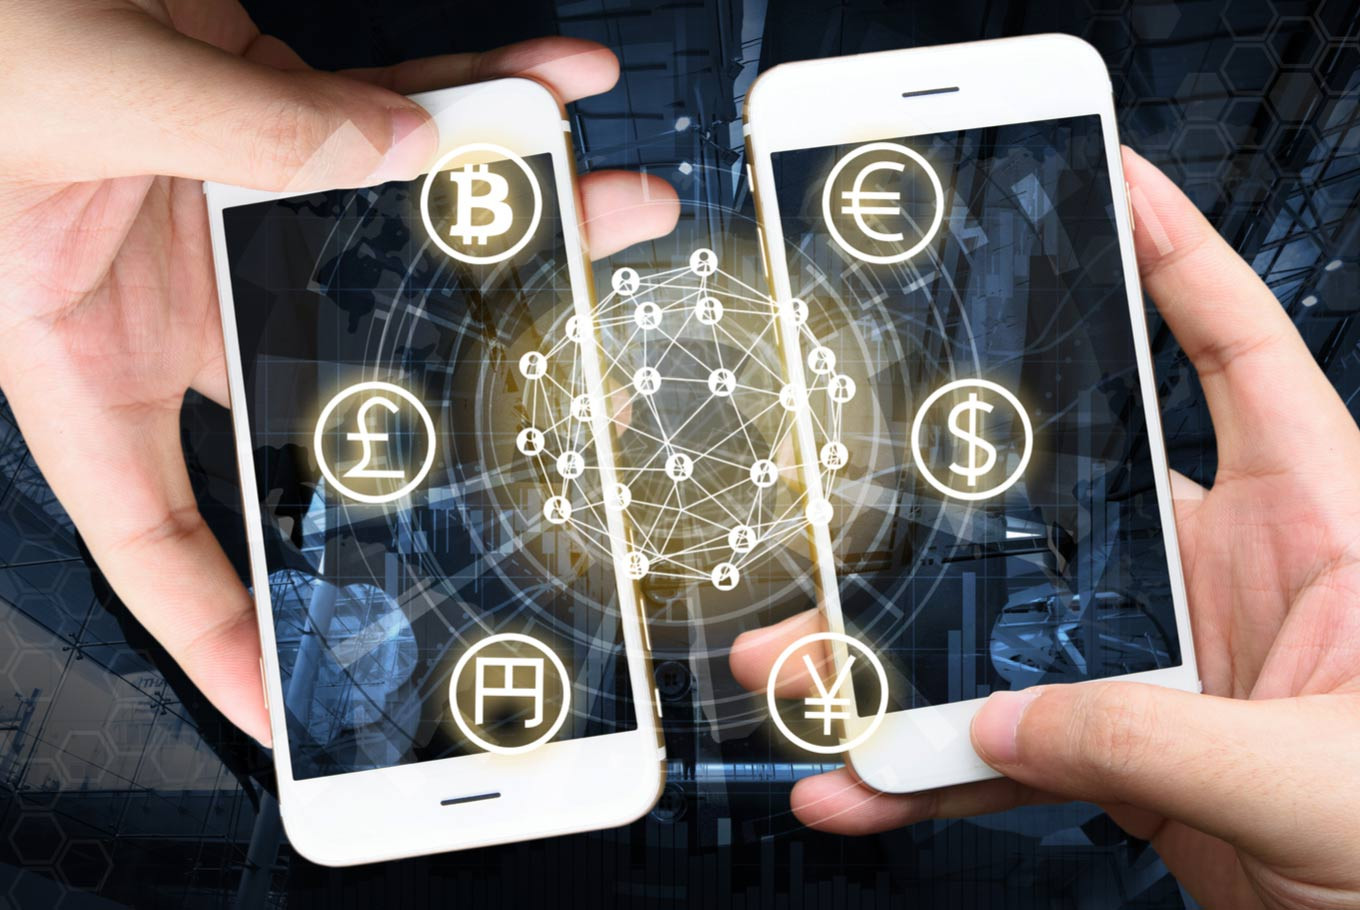 Fintech for Millennials: Made Easy or Complicated?